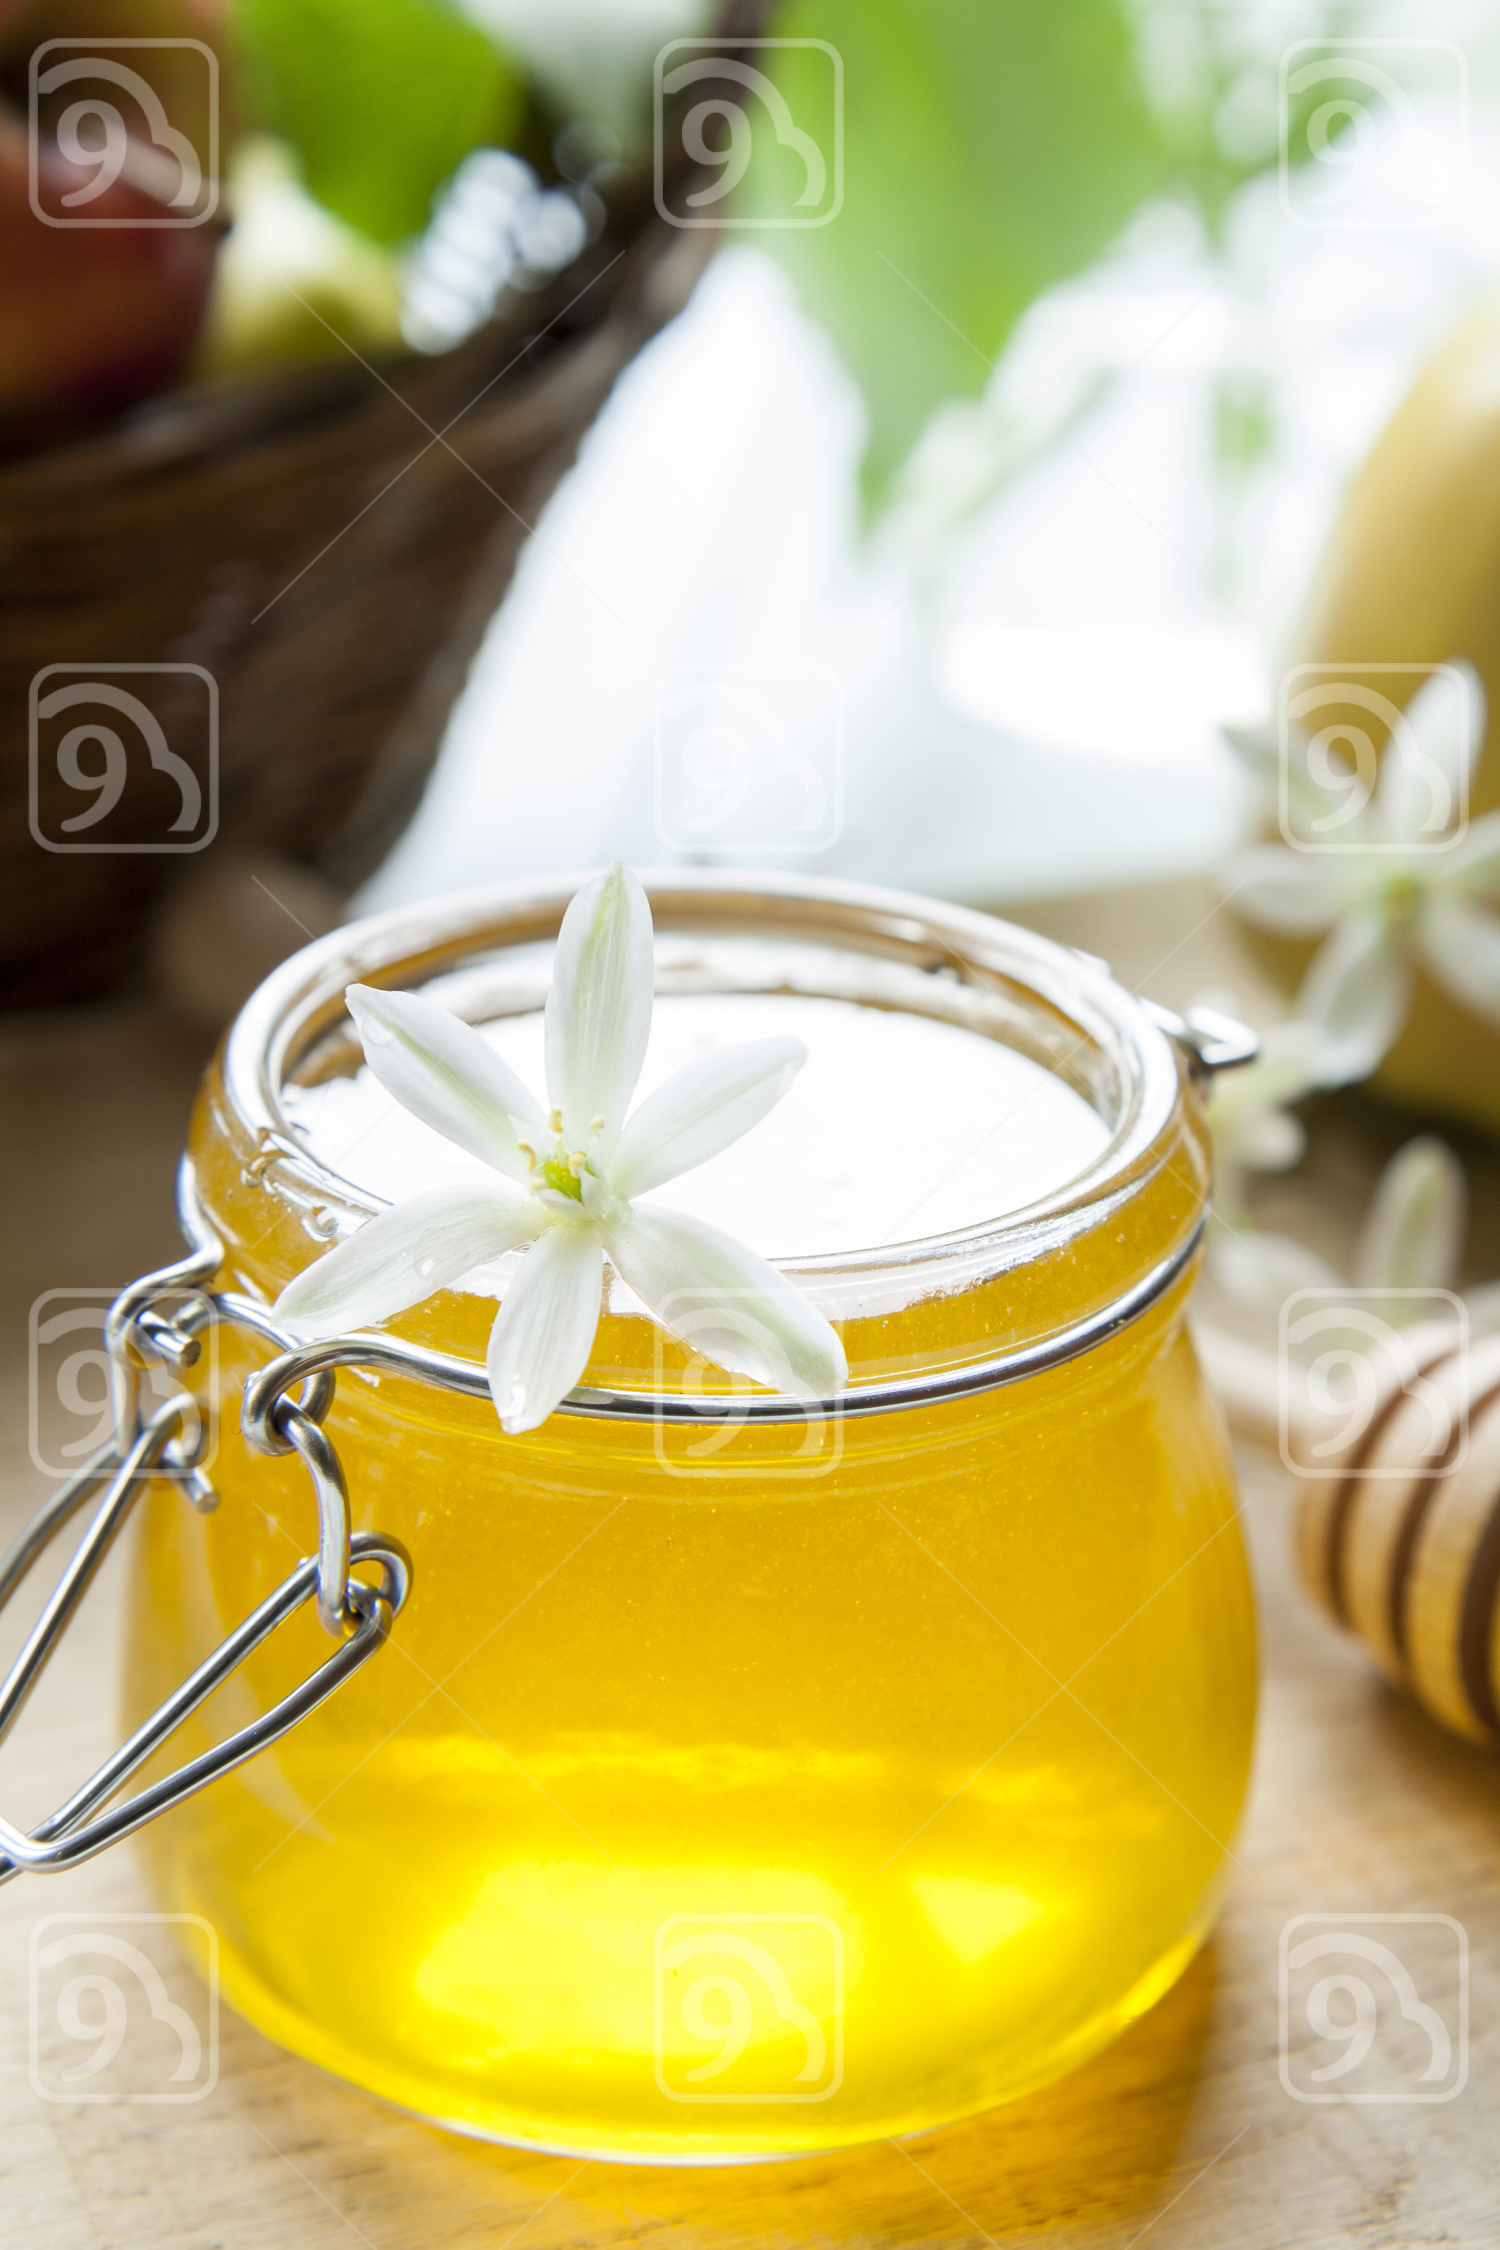 Honey and white flowers on table